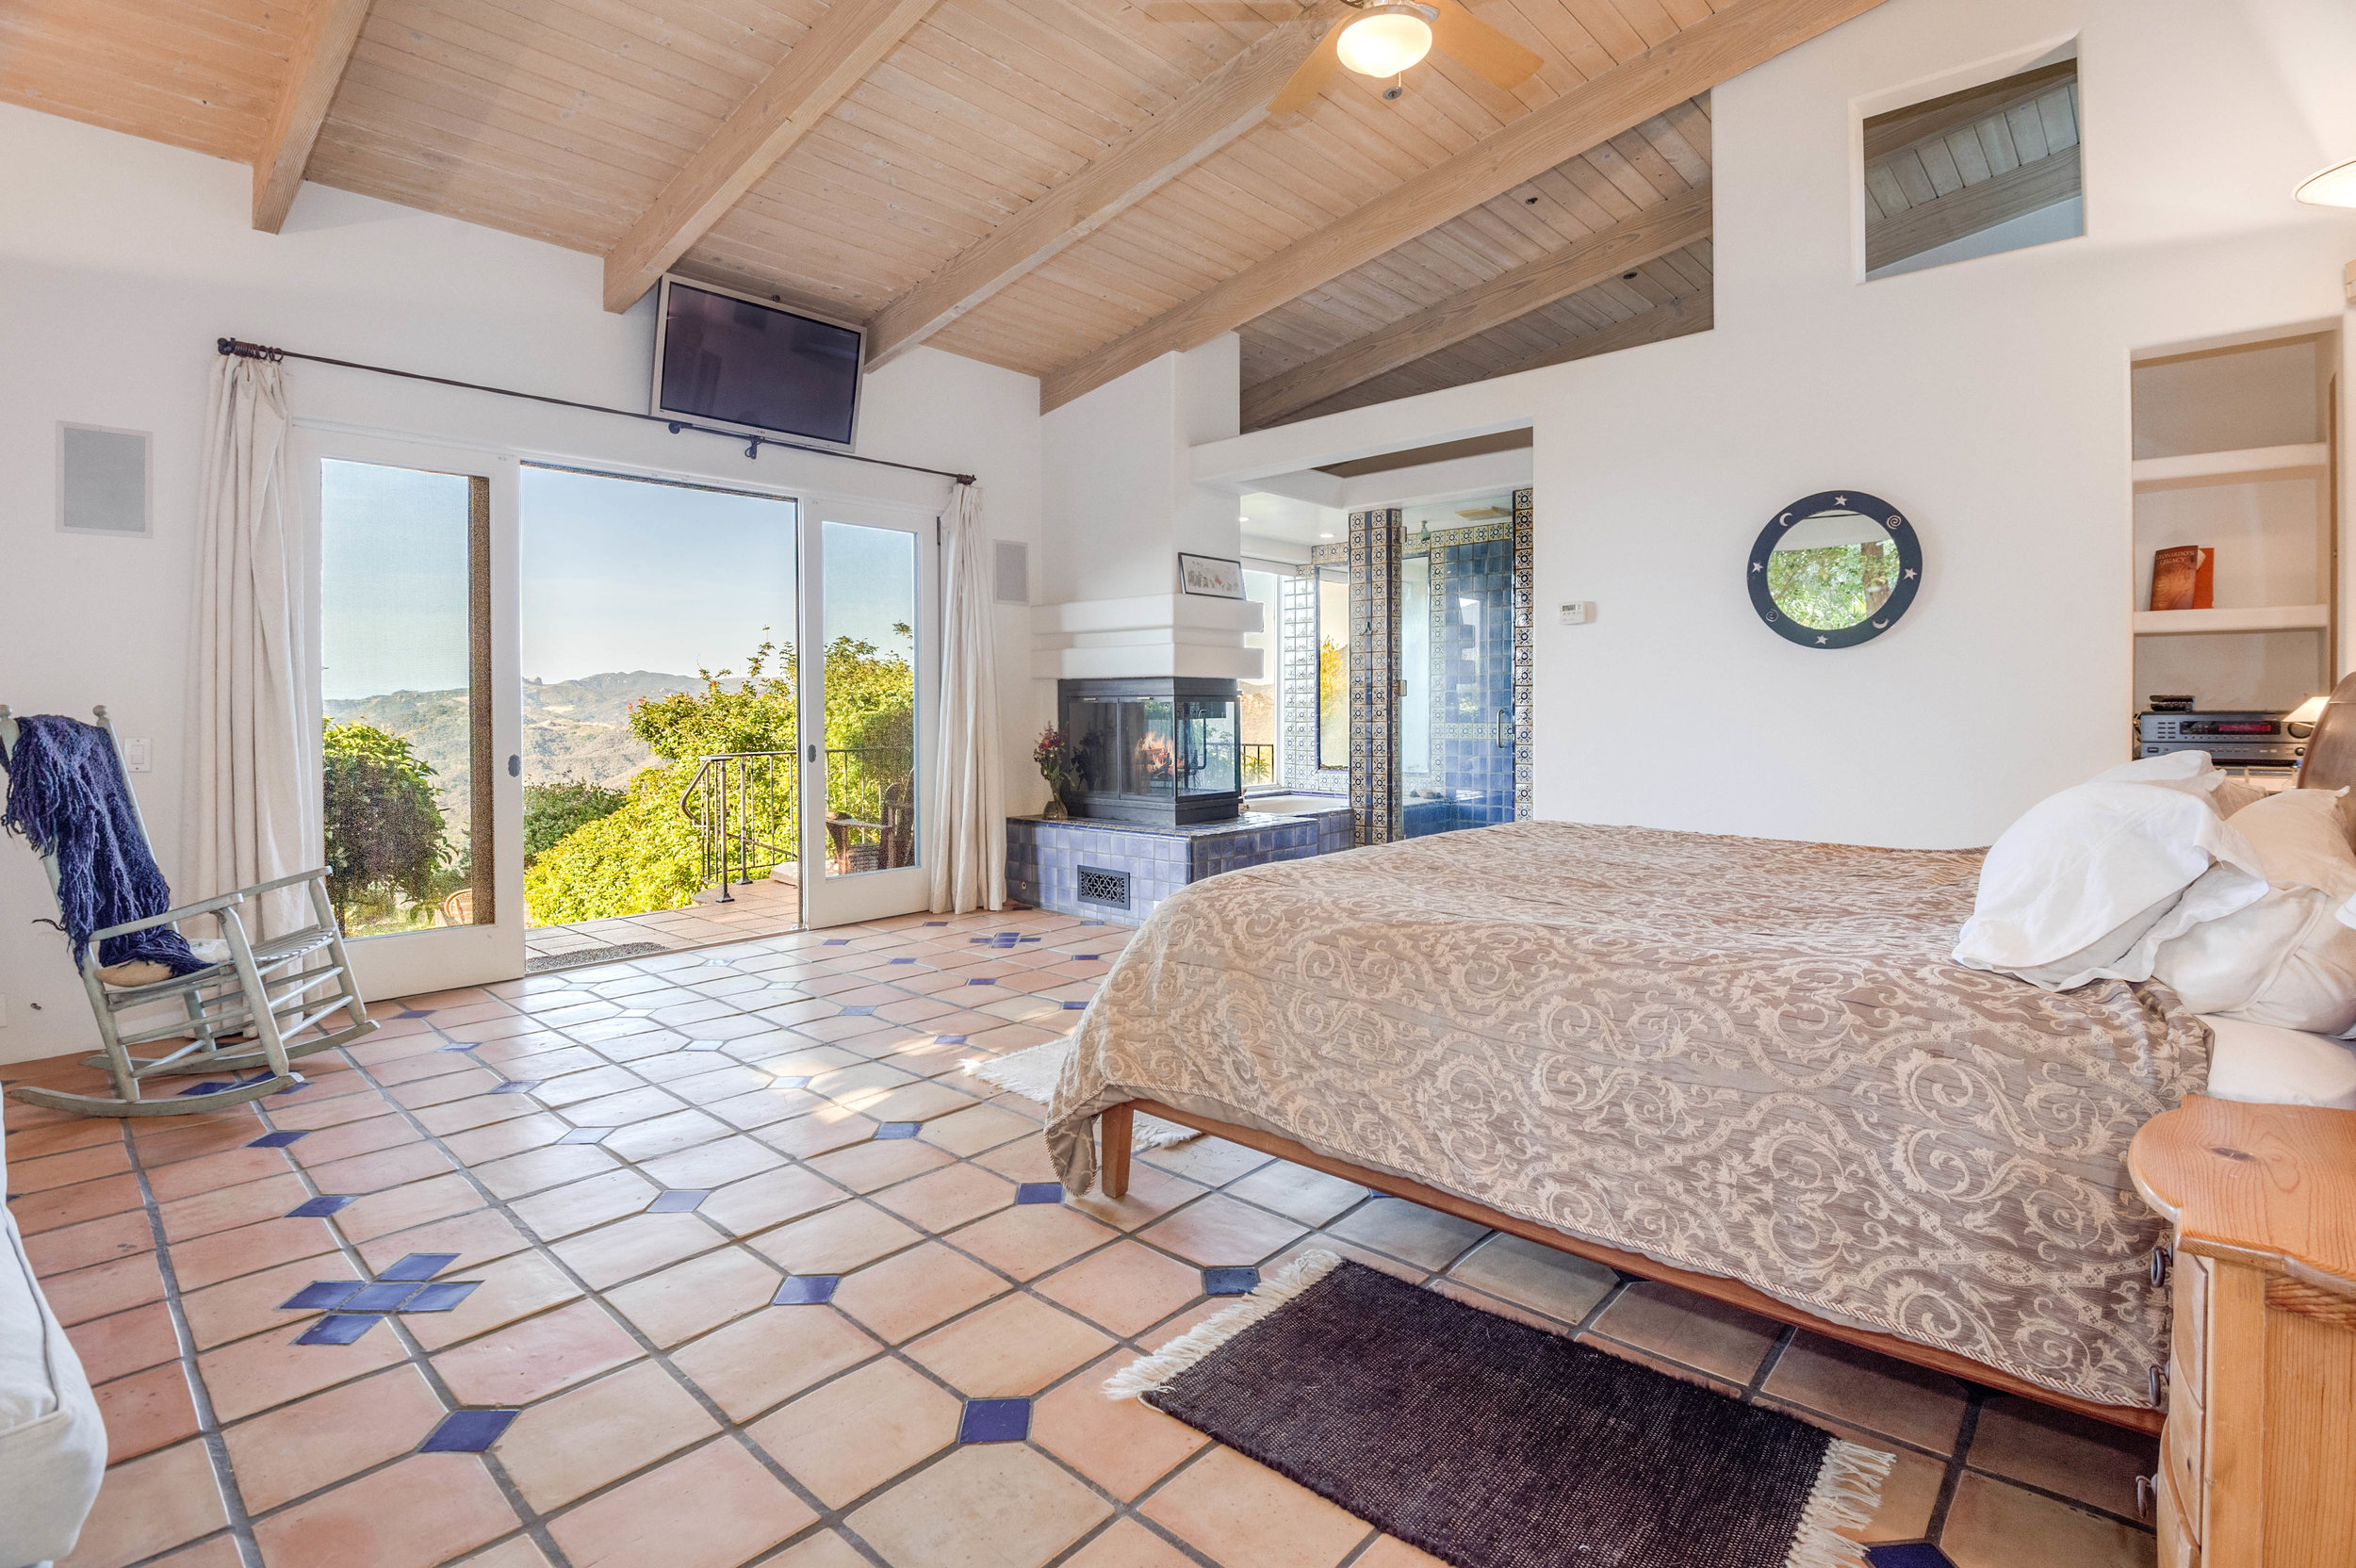 007 Master Bedroom 20333 Reigate Road Topanga For Sale Lease The Malibu Life Team Luxury Real Estate.jpg